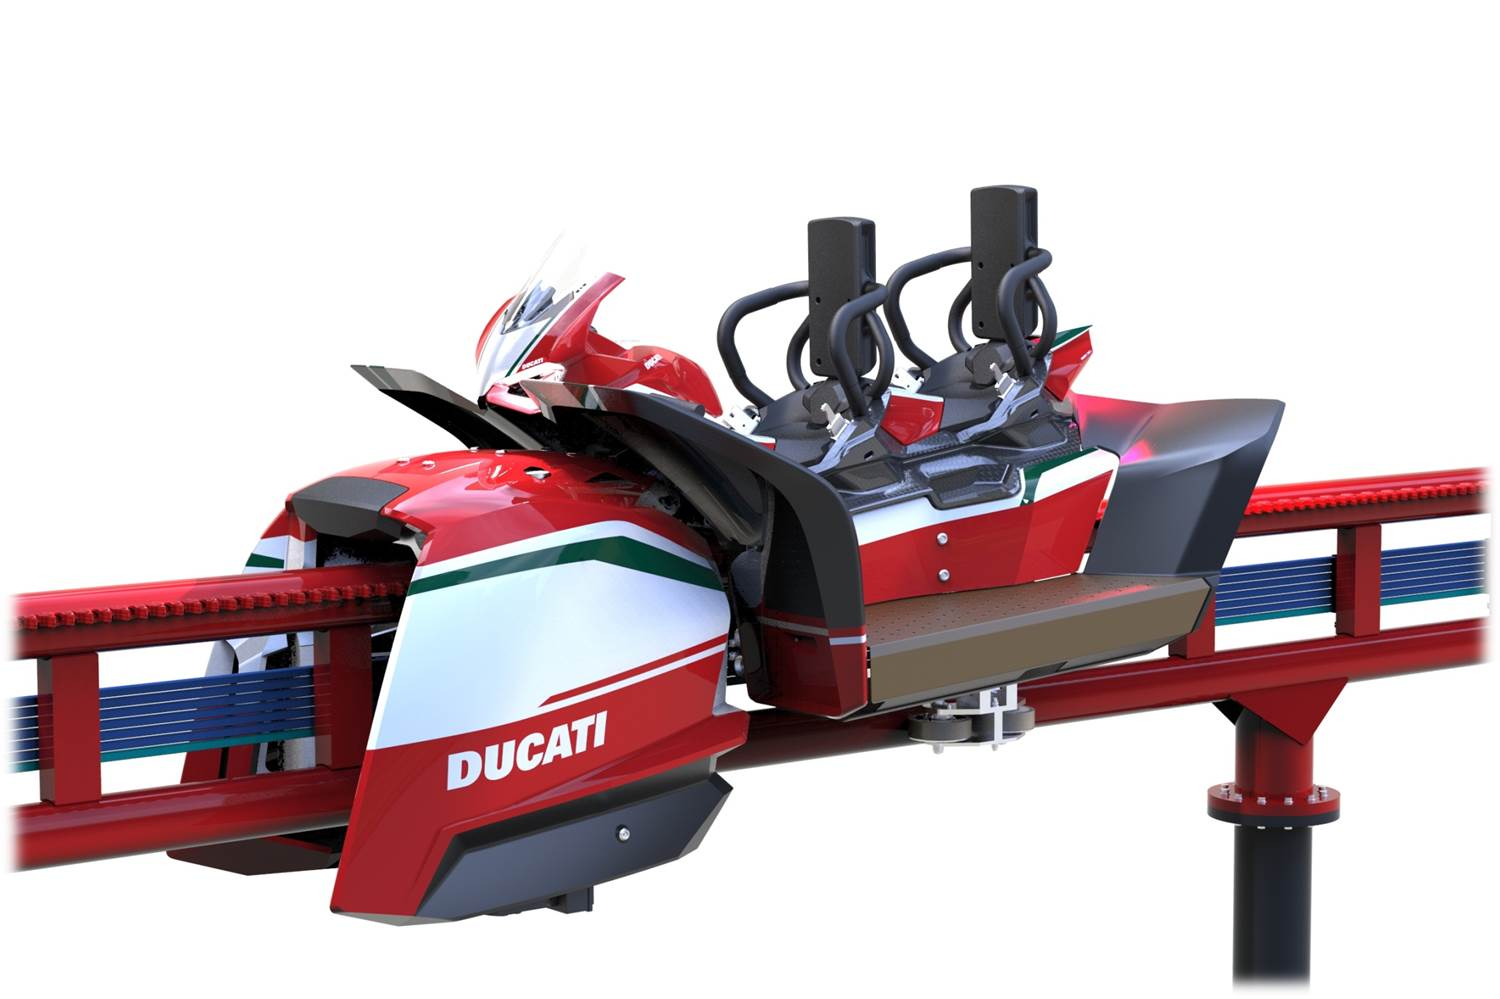 Ducati World theme park building has started